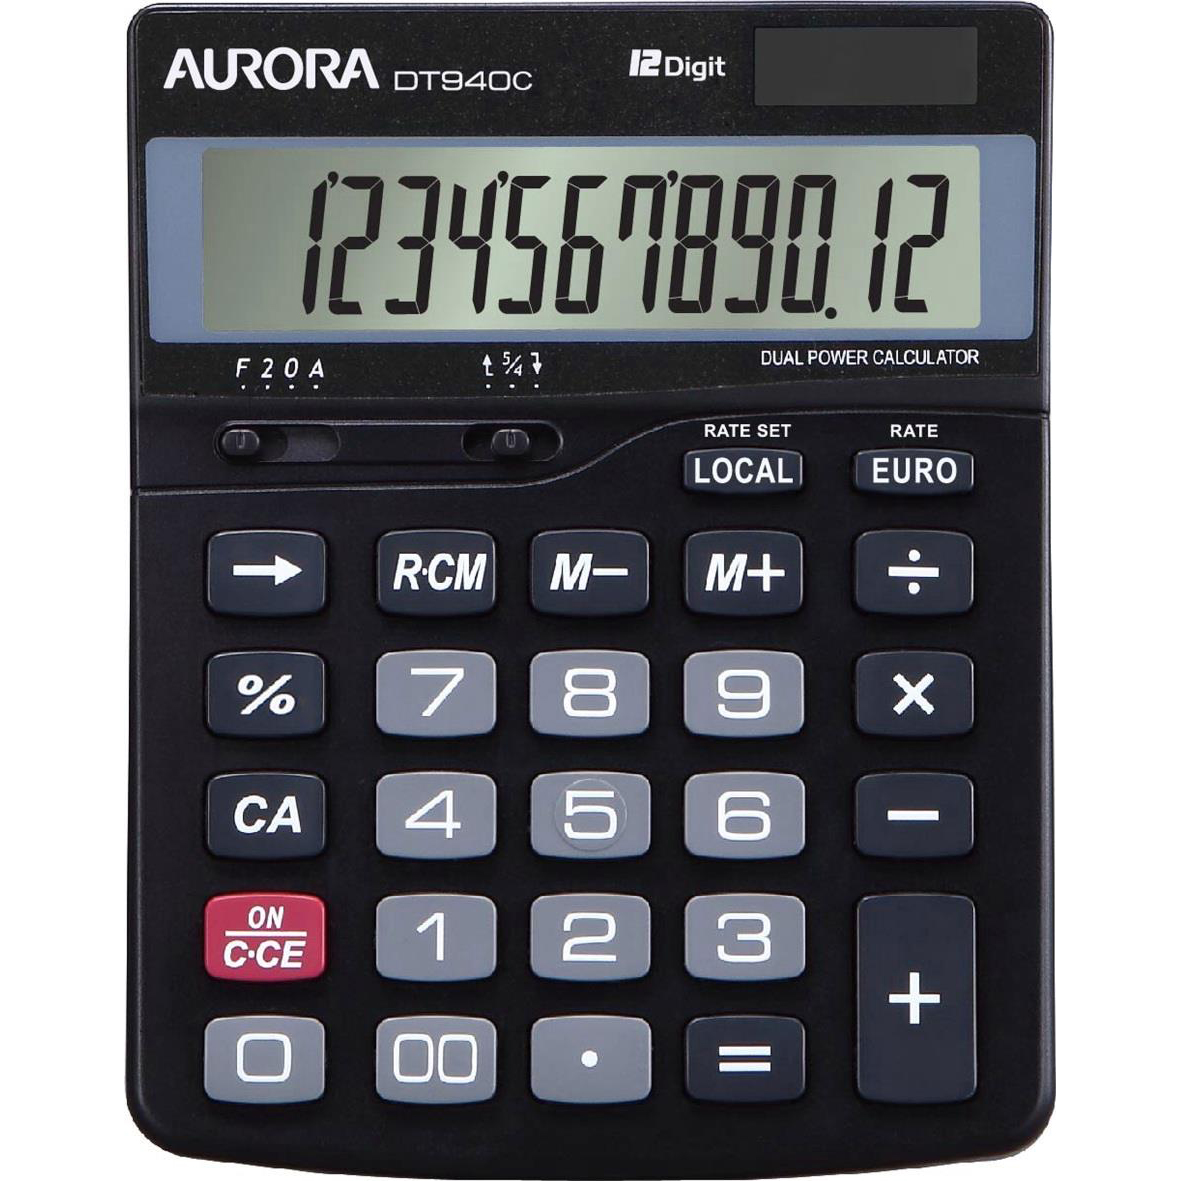 Desktop Calculator Aurora Semi-desk Calculator 12 Digit 3 Key Memory Battery/Solar Power 115x33x145mm Black Ref DT940C